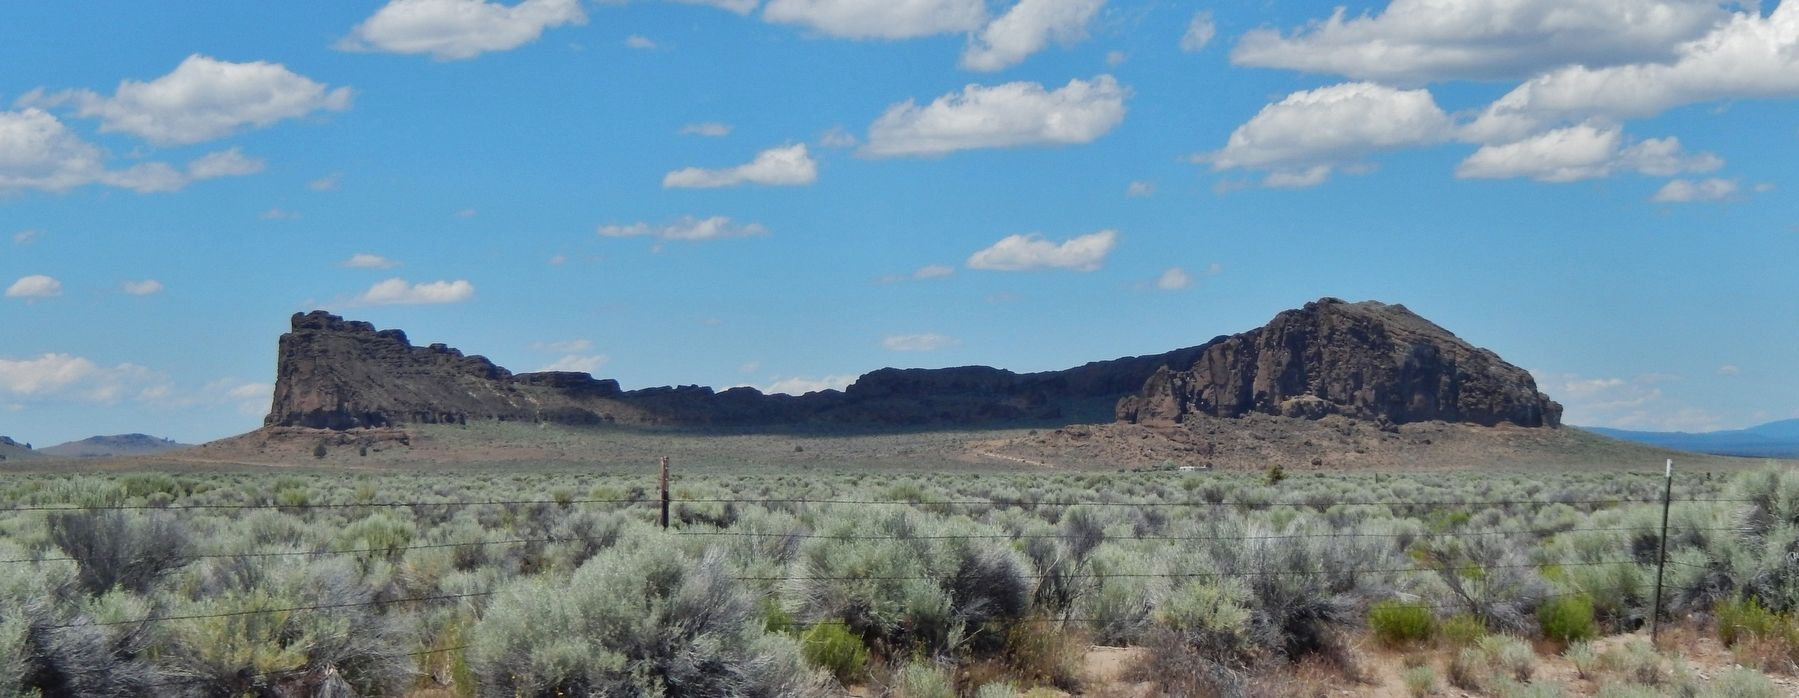 Fort Rock (<i>view from near marker</i>) image. Click for full size.